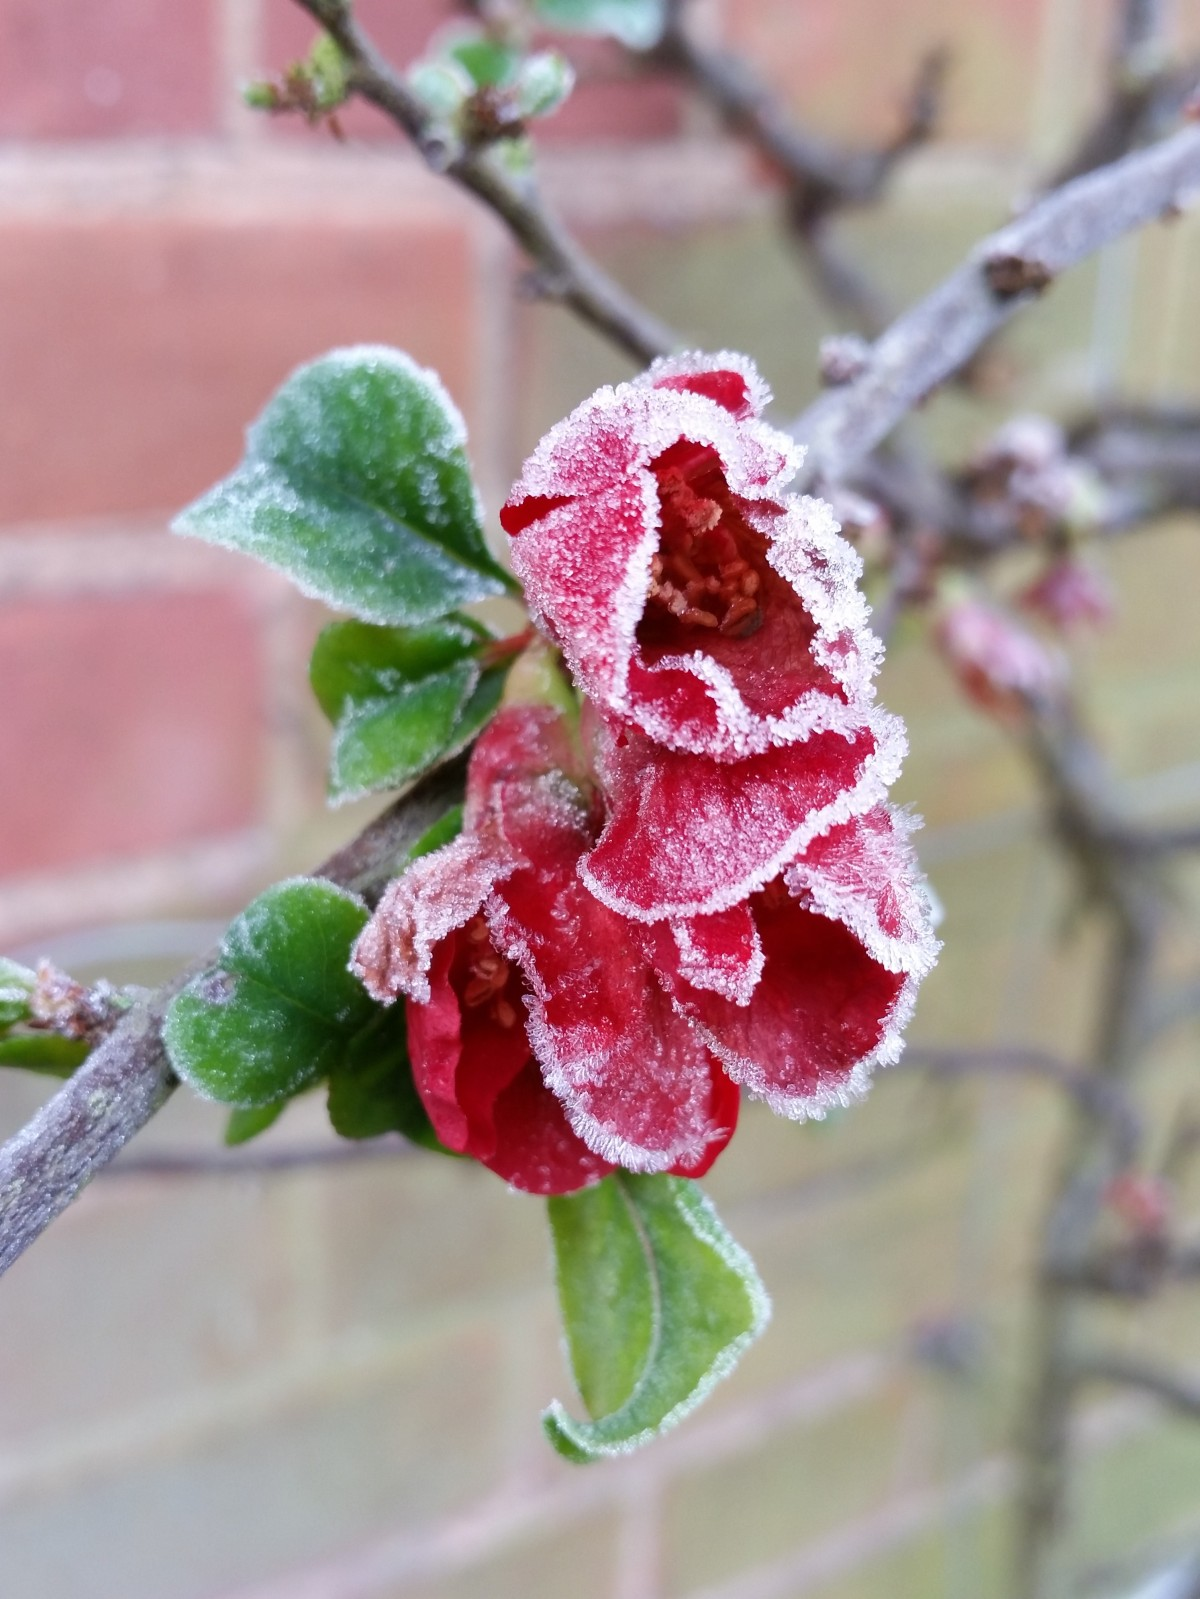 Japanese quince, photograph by Leighanne Gee, Winterbourne House and Garden, Digging for Dirt